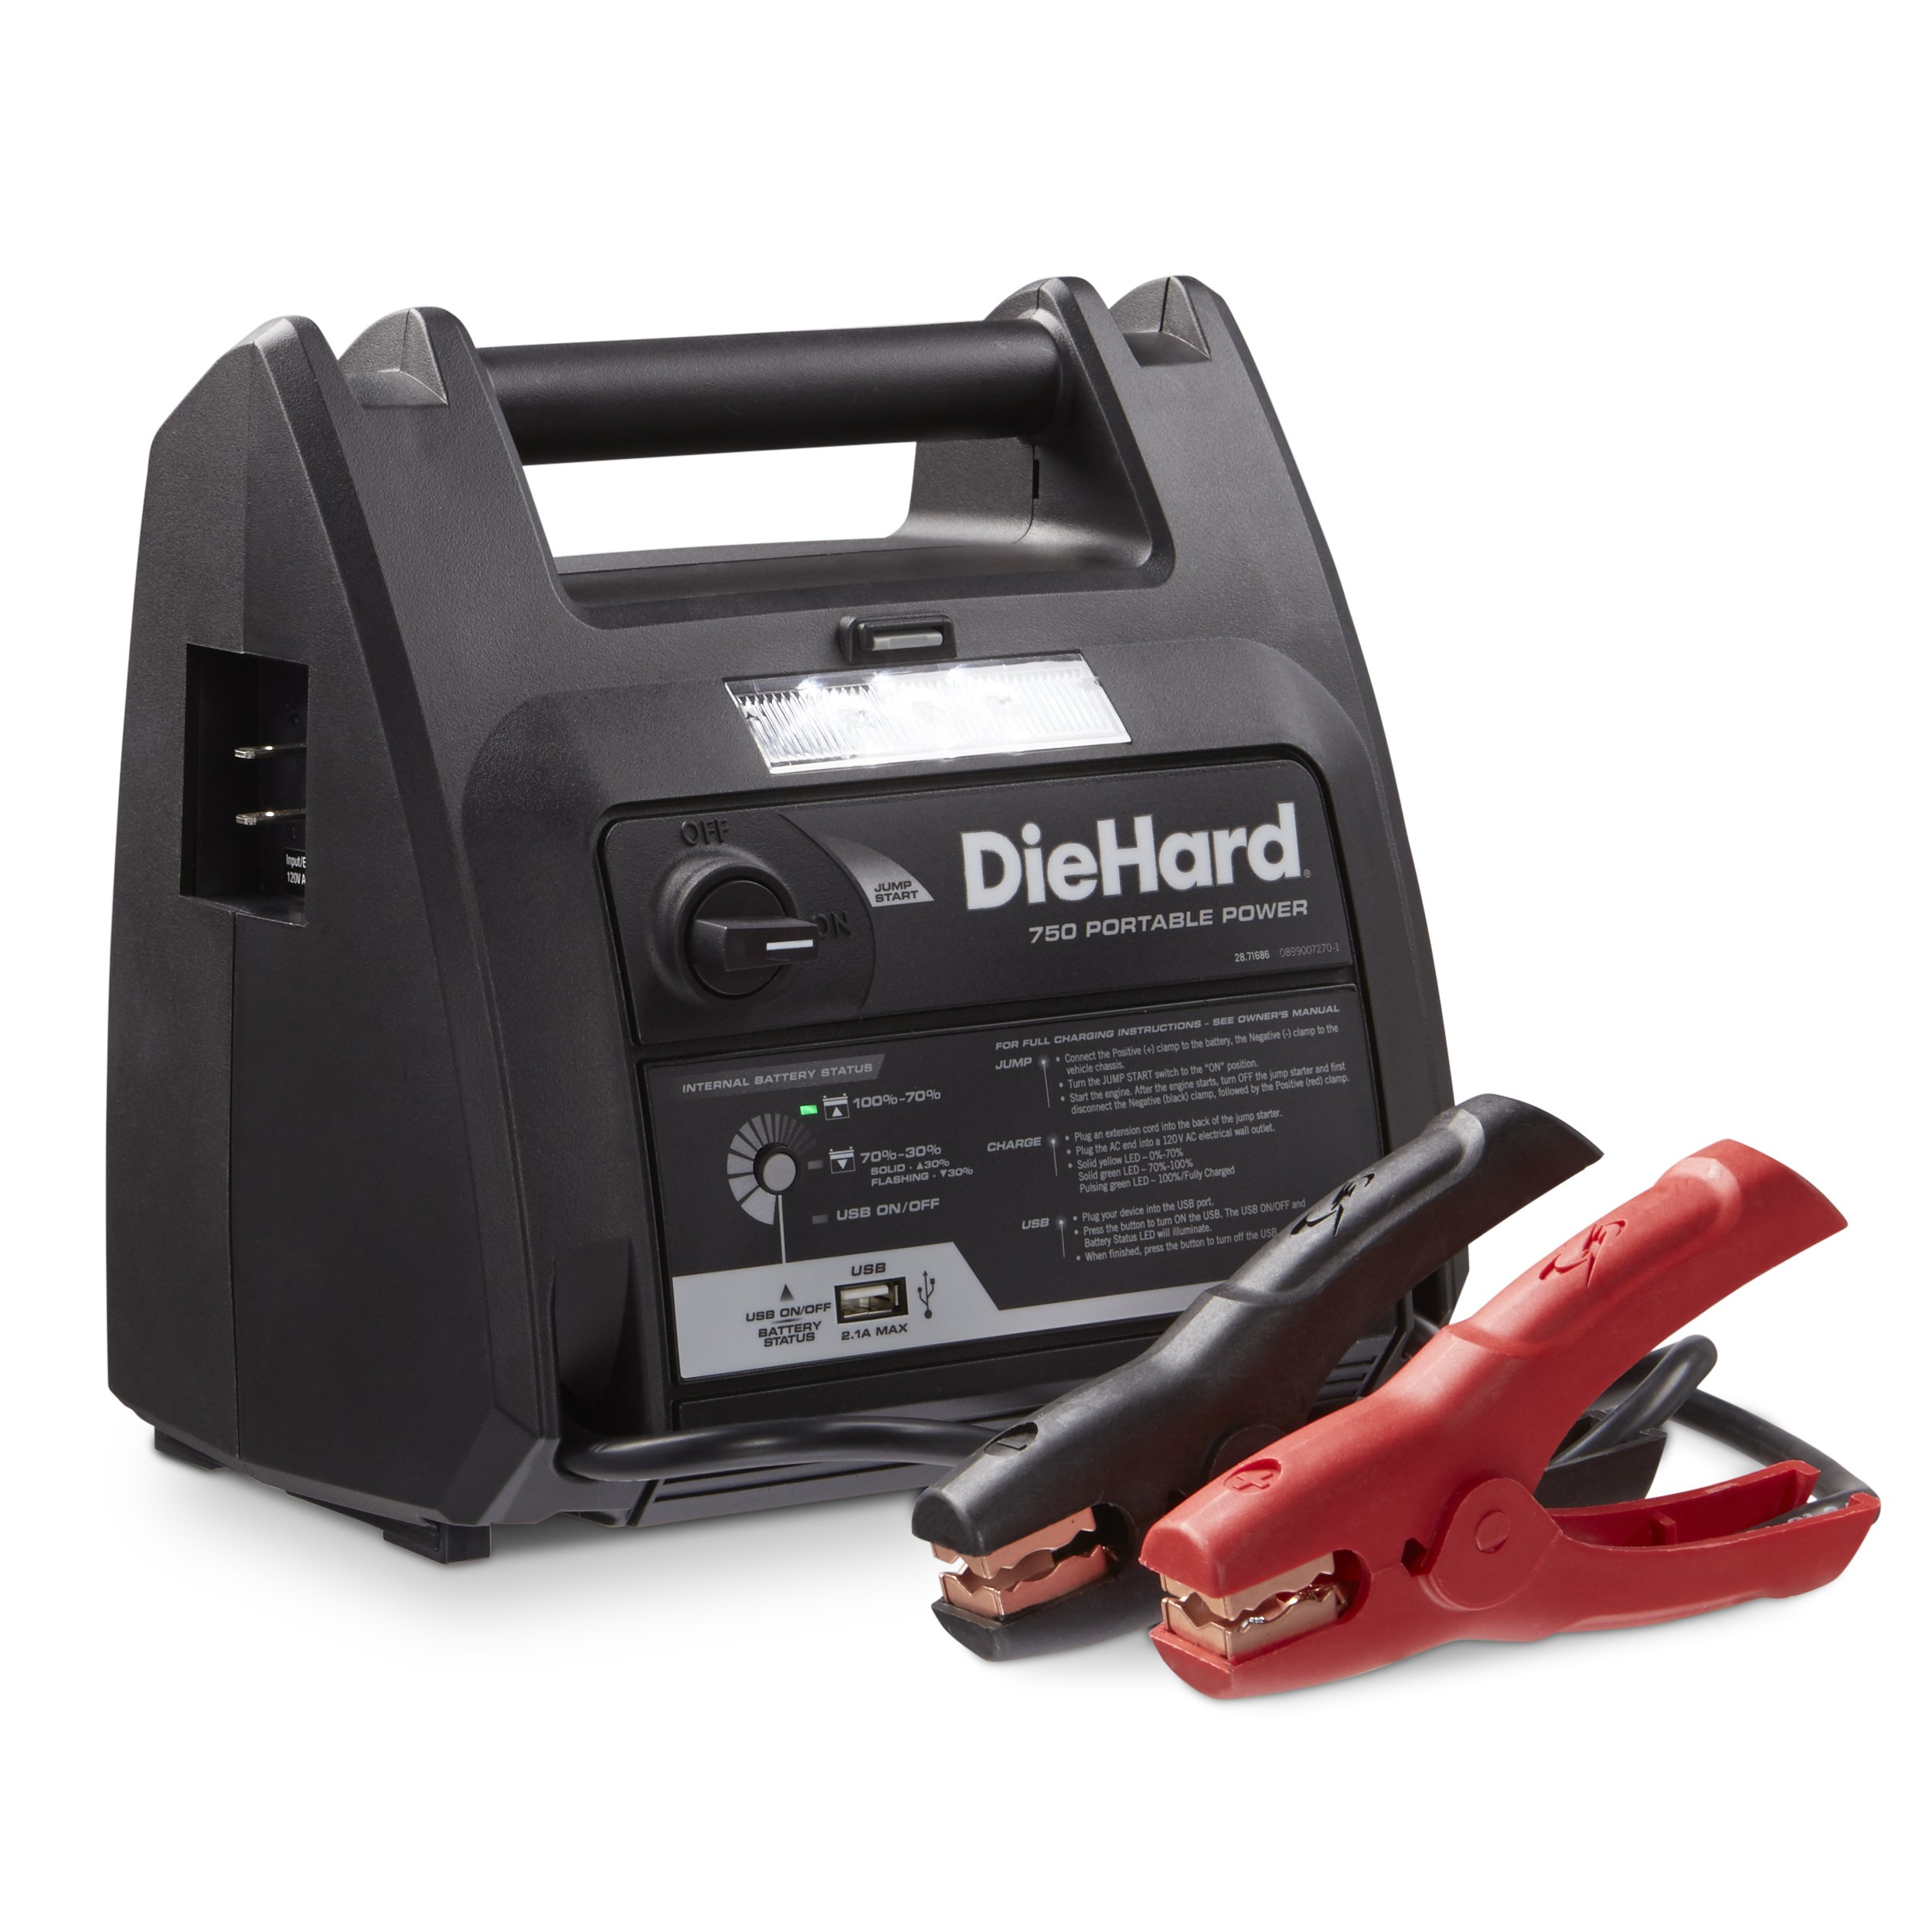 DieHard 71686 Portable Power 750 Peak Amp 12V Jump Starter and Power Source with 1-USB 1-12V Power Port